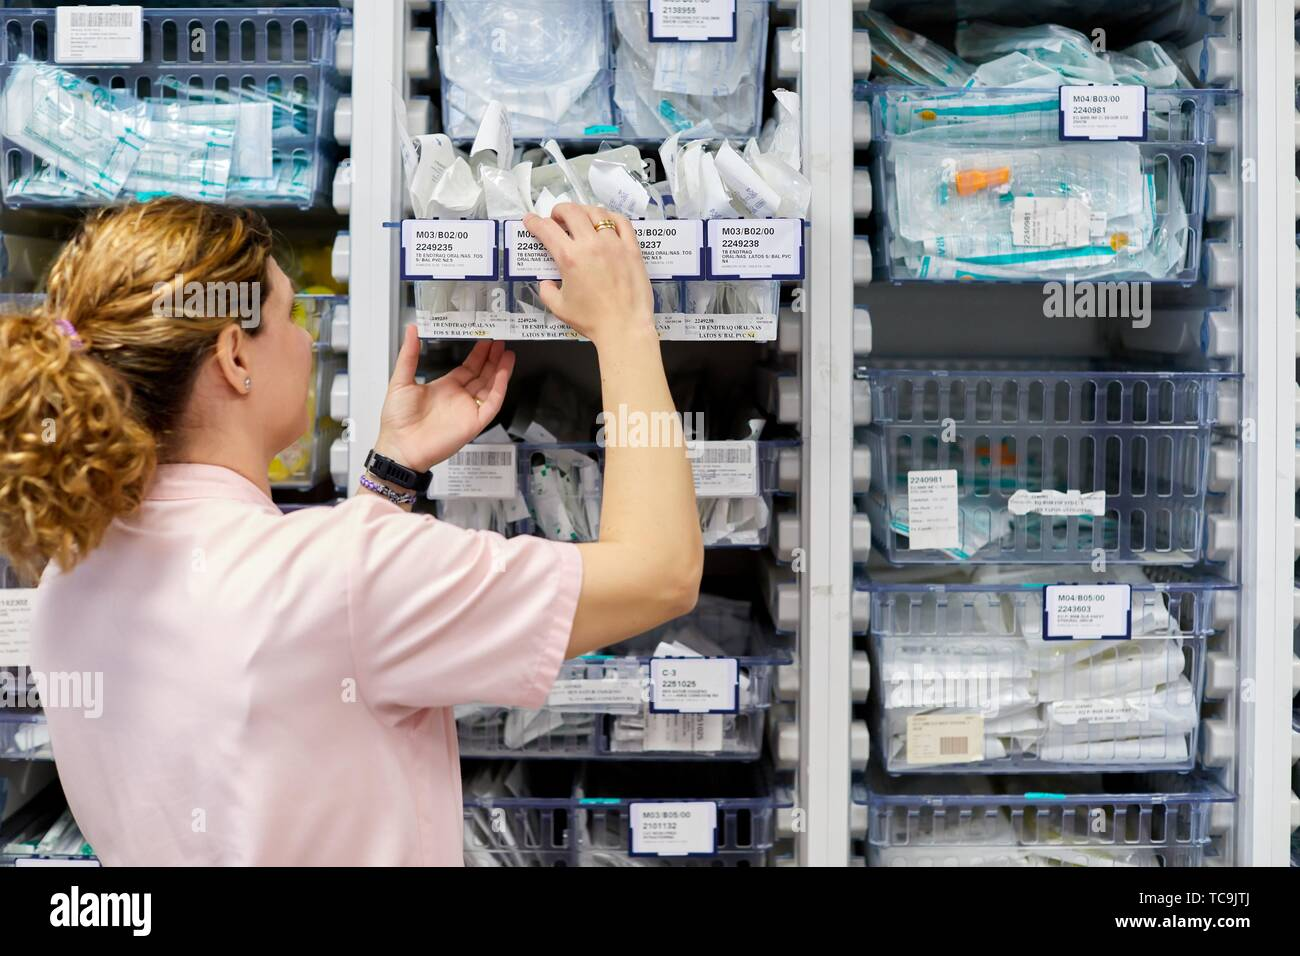 Pharmacy, Auxiliary with medical products, Delivery rooms, Hospital Donostia, San Sebastian, Gipuzkoa, Basque Country, Spain - Stock Image